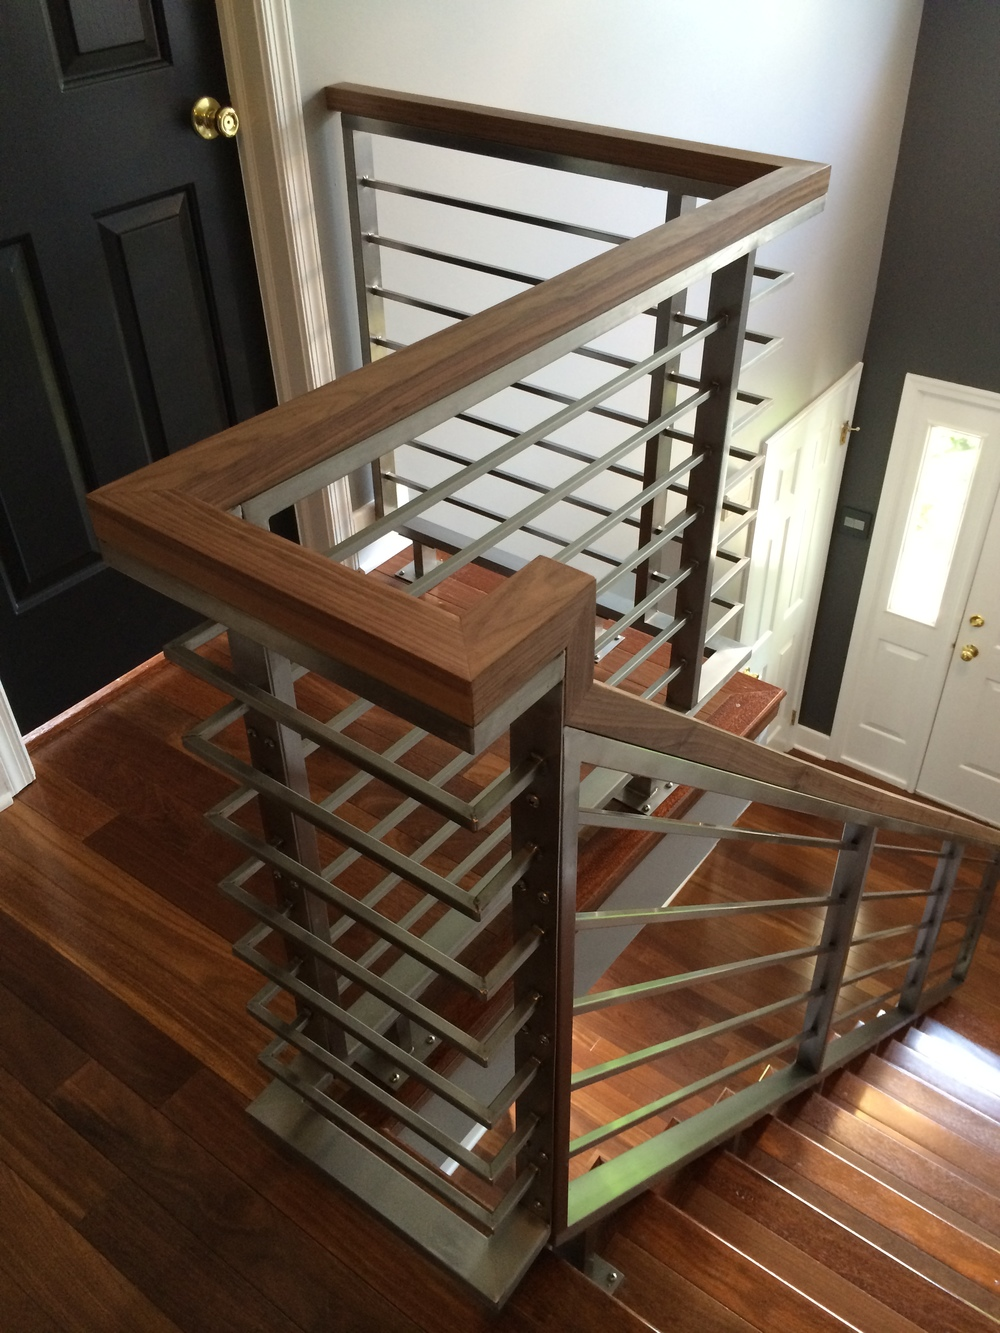 HORIZONTAL STAINLESS STEEL RAILING